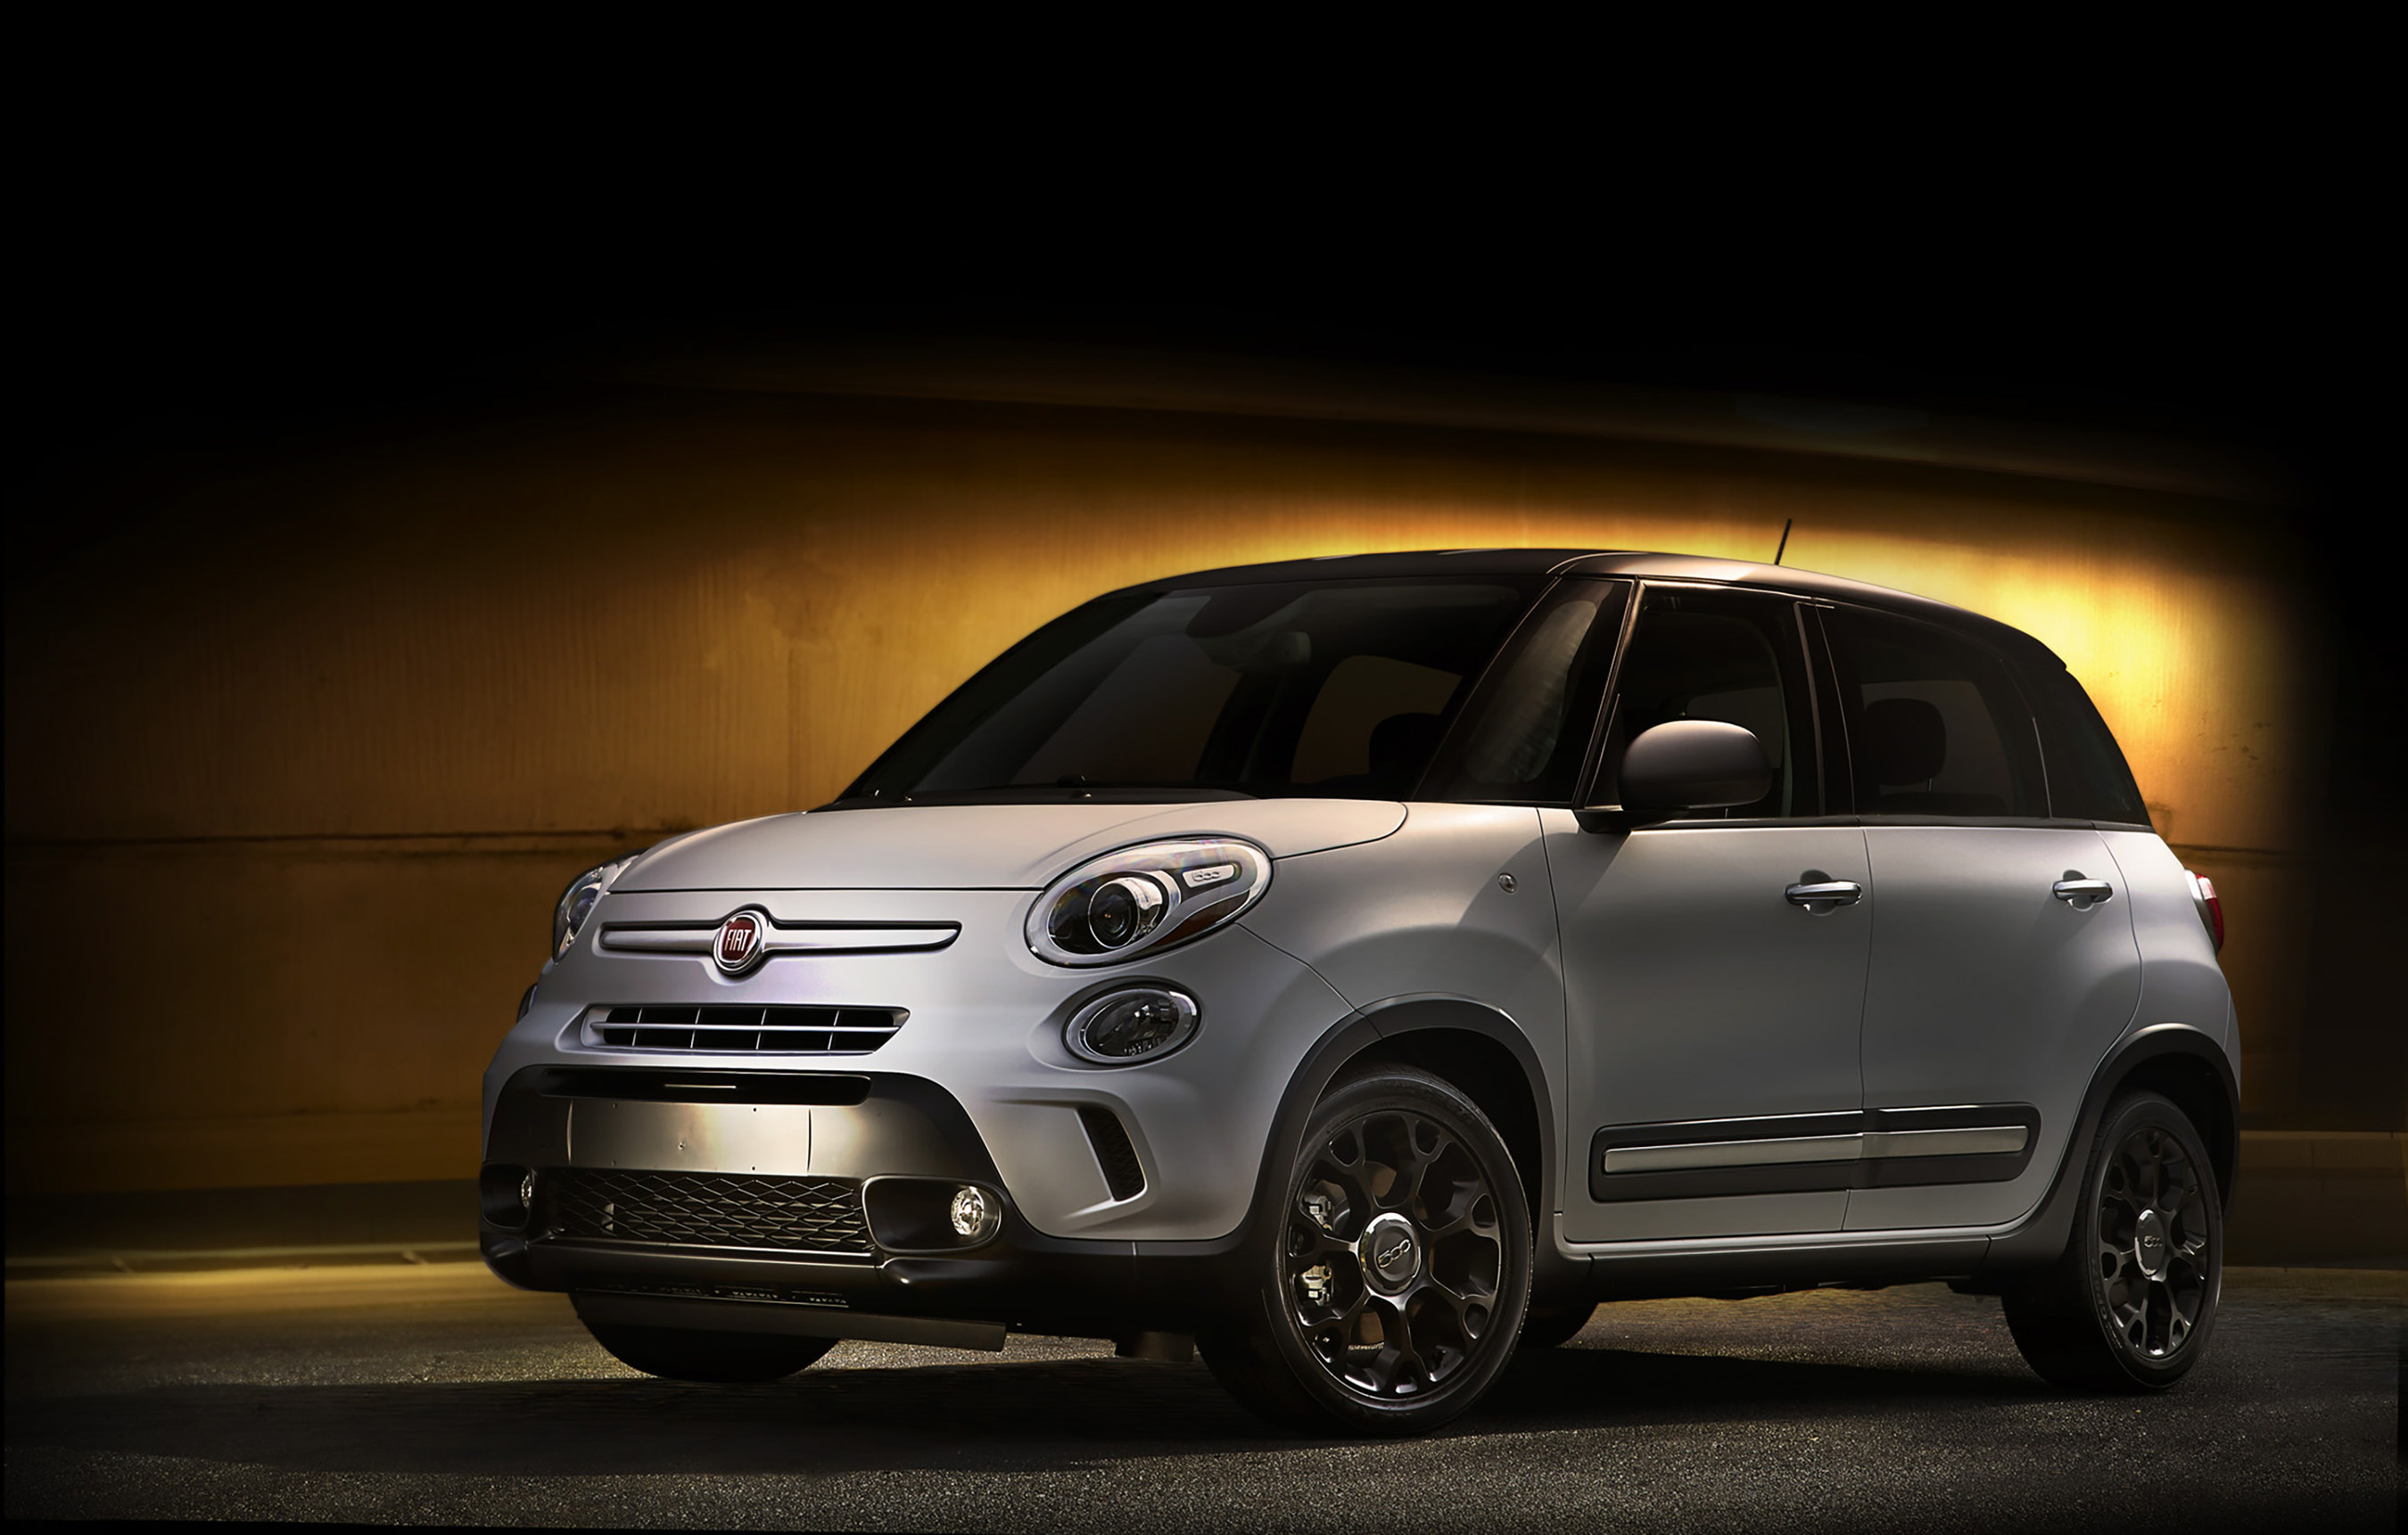 FIAT Brand introduces two special edition vehicles at the 2014 Miami International Auto Show, including the ...